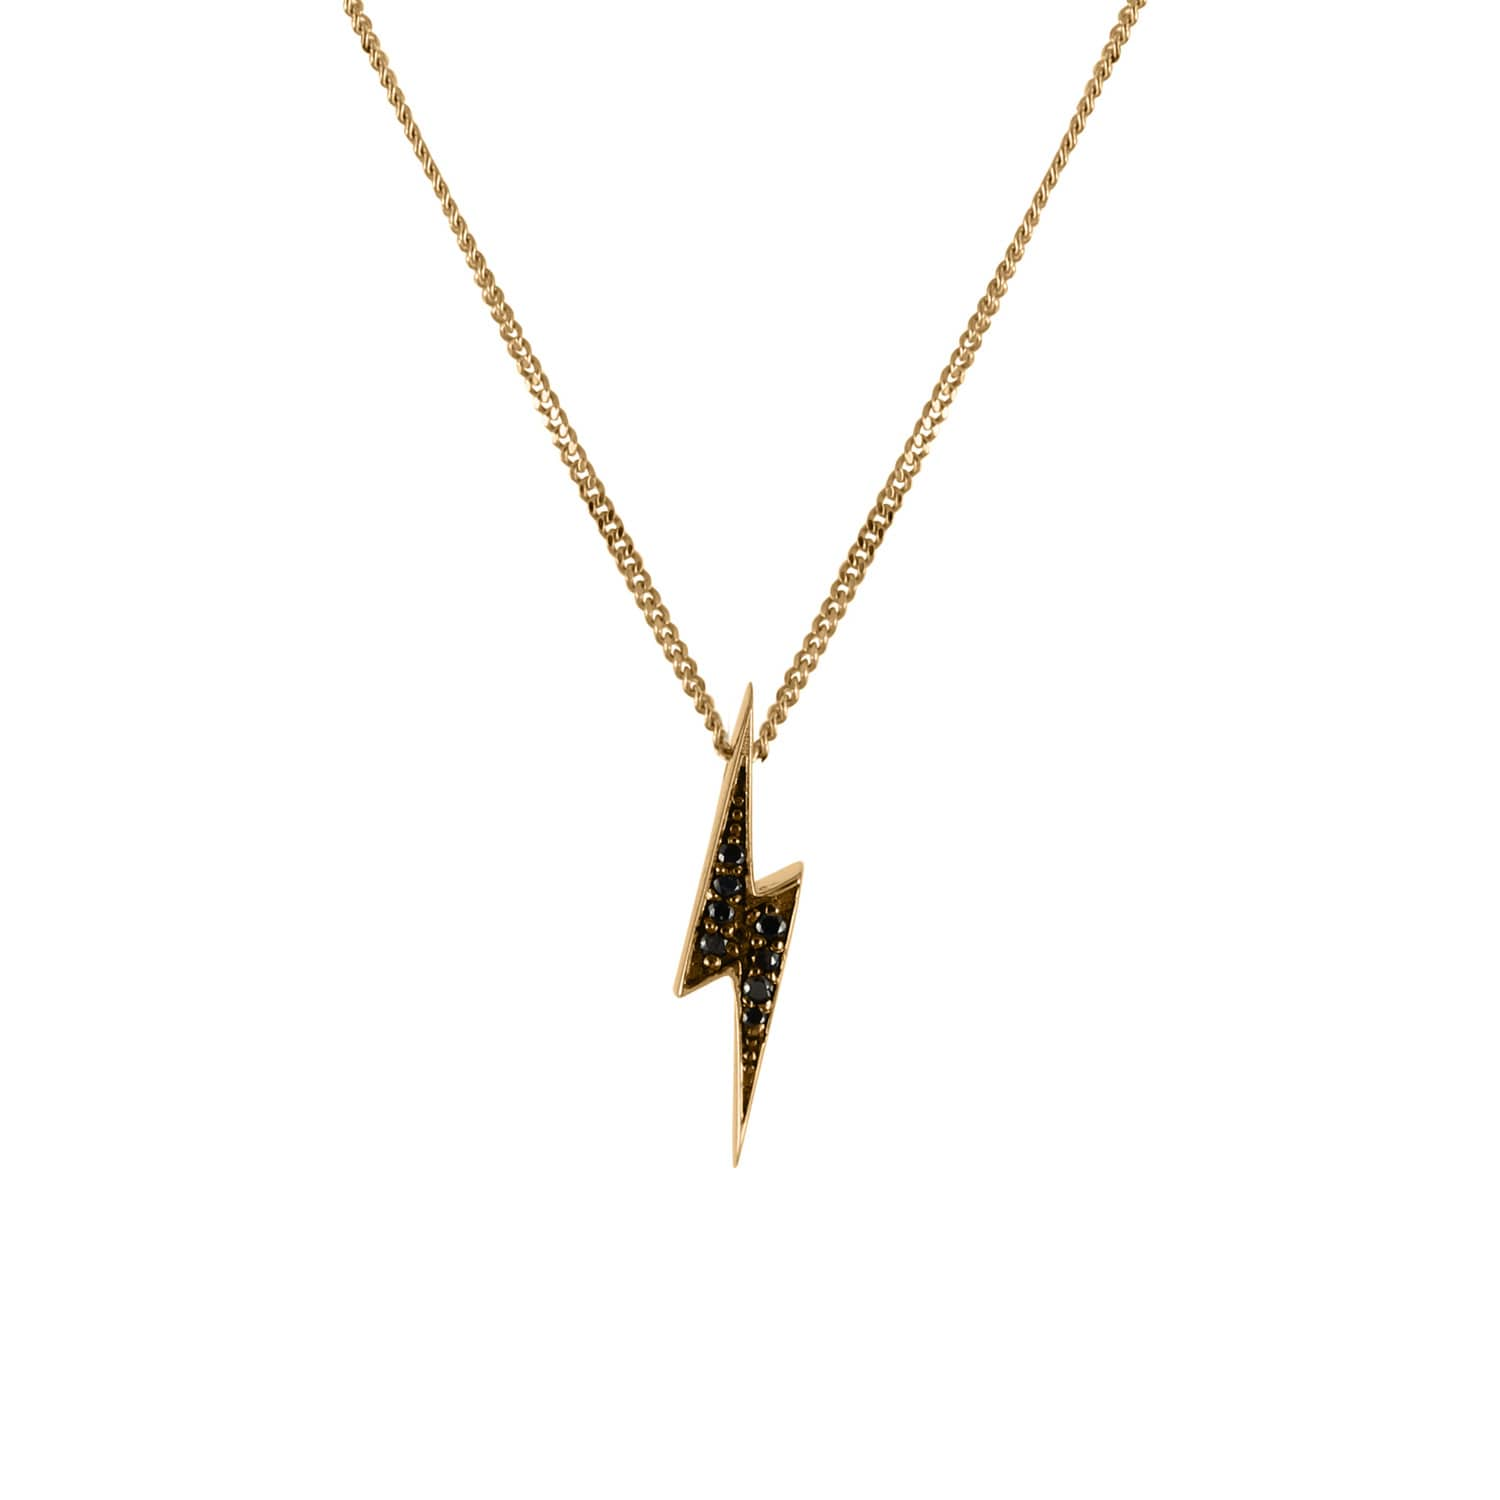 724b010b19ac1 Black Diamonds Lightning Bolt Necklace In Solid Gold by No 13